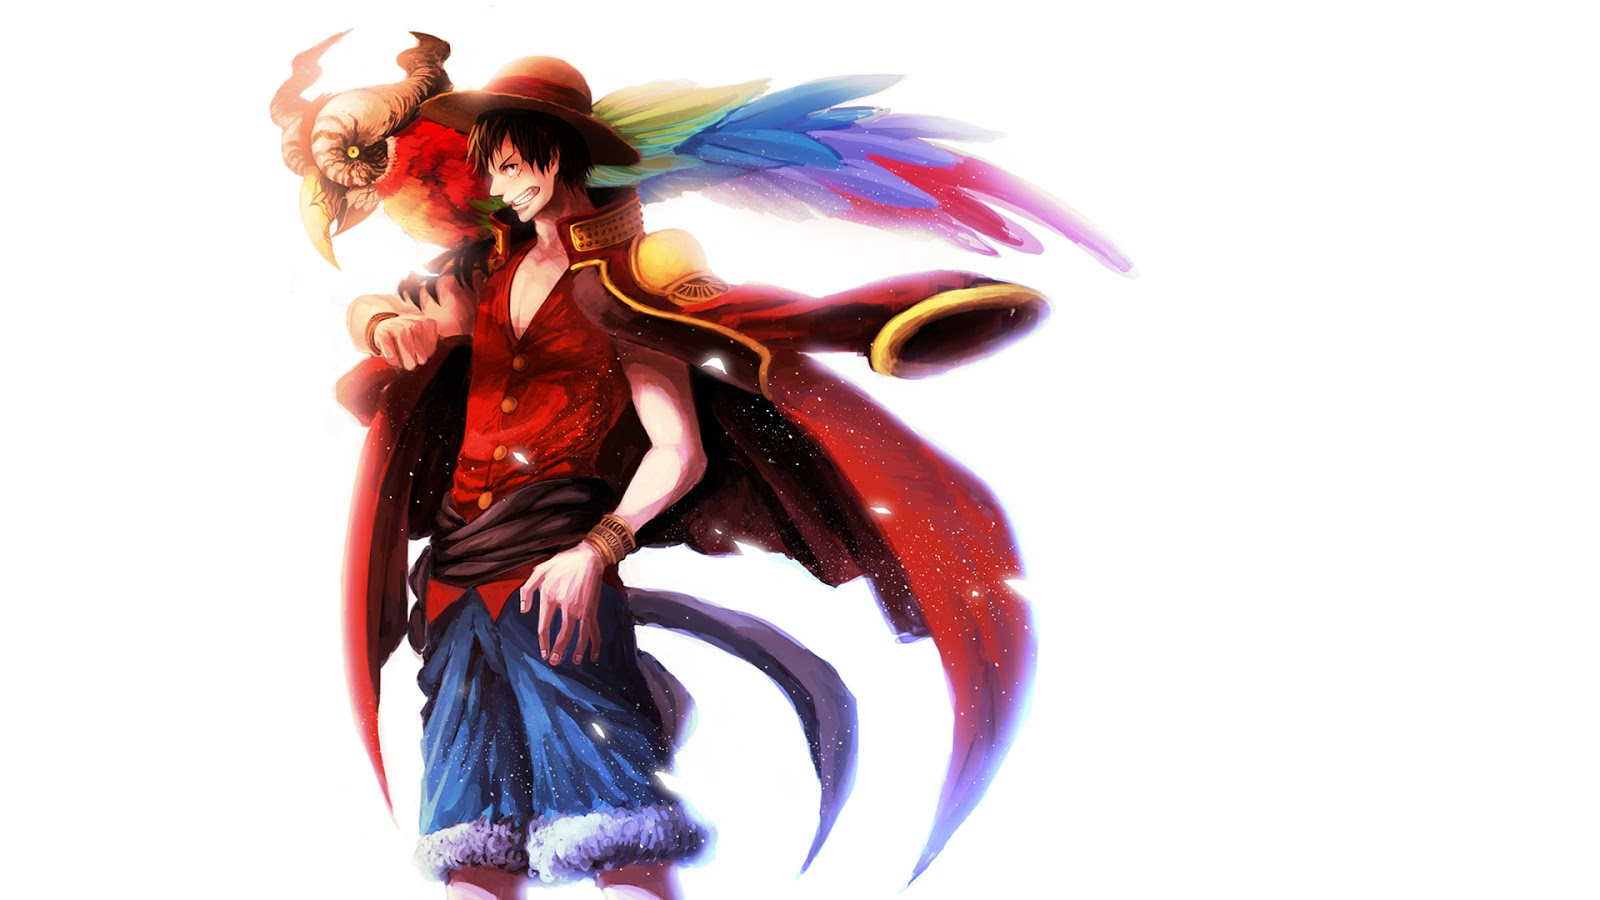 50 Monkey D Luffy Wallpaper Hd On Wallpapersafari